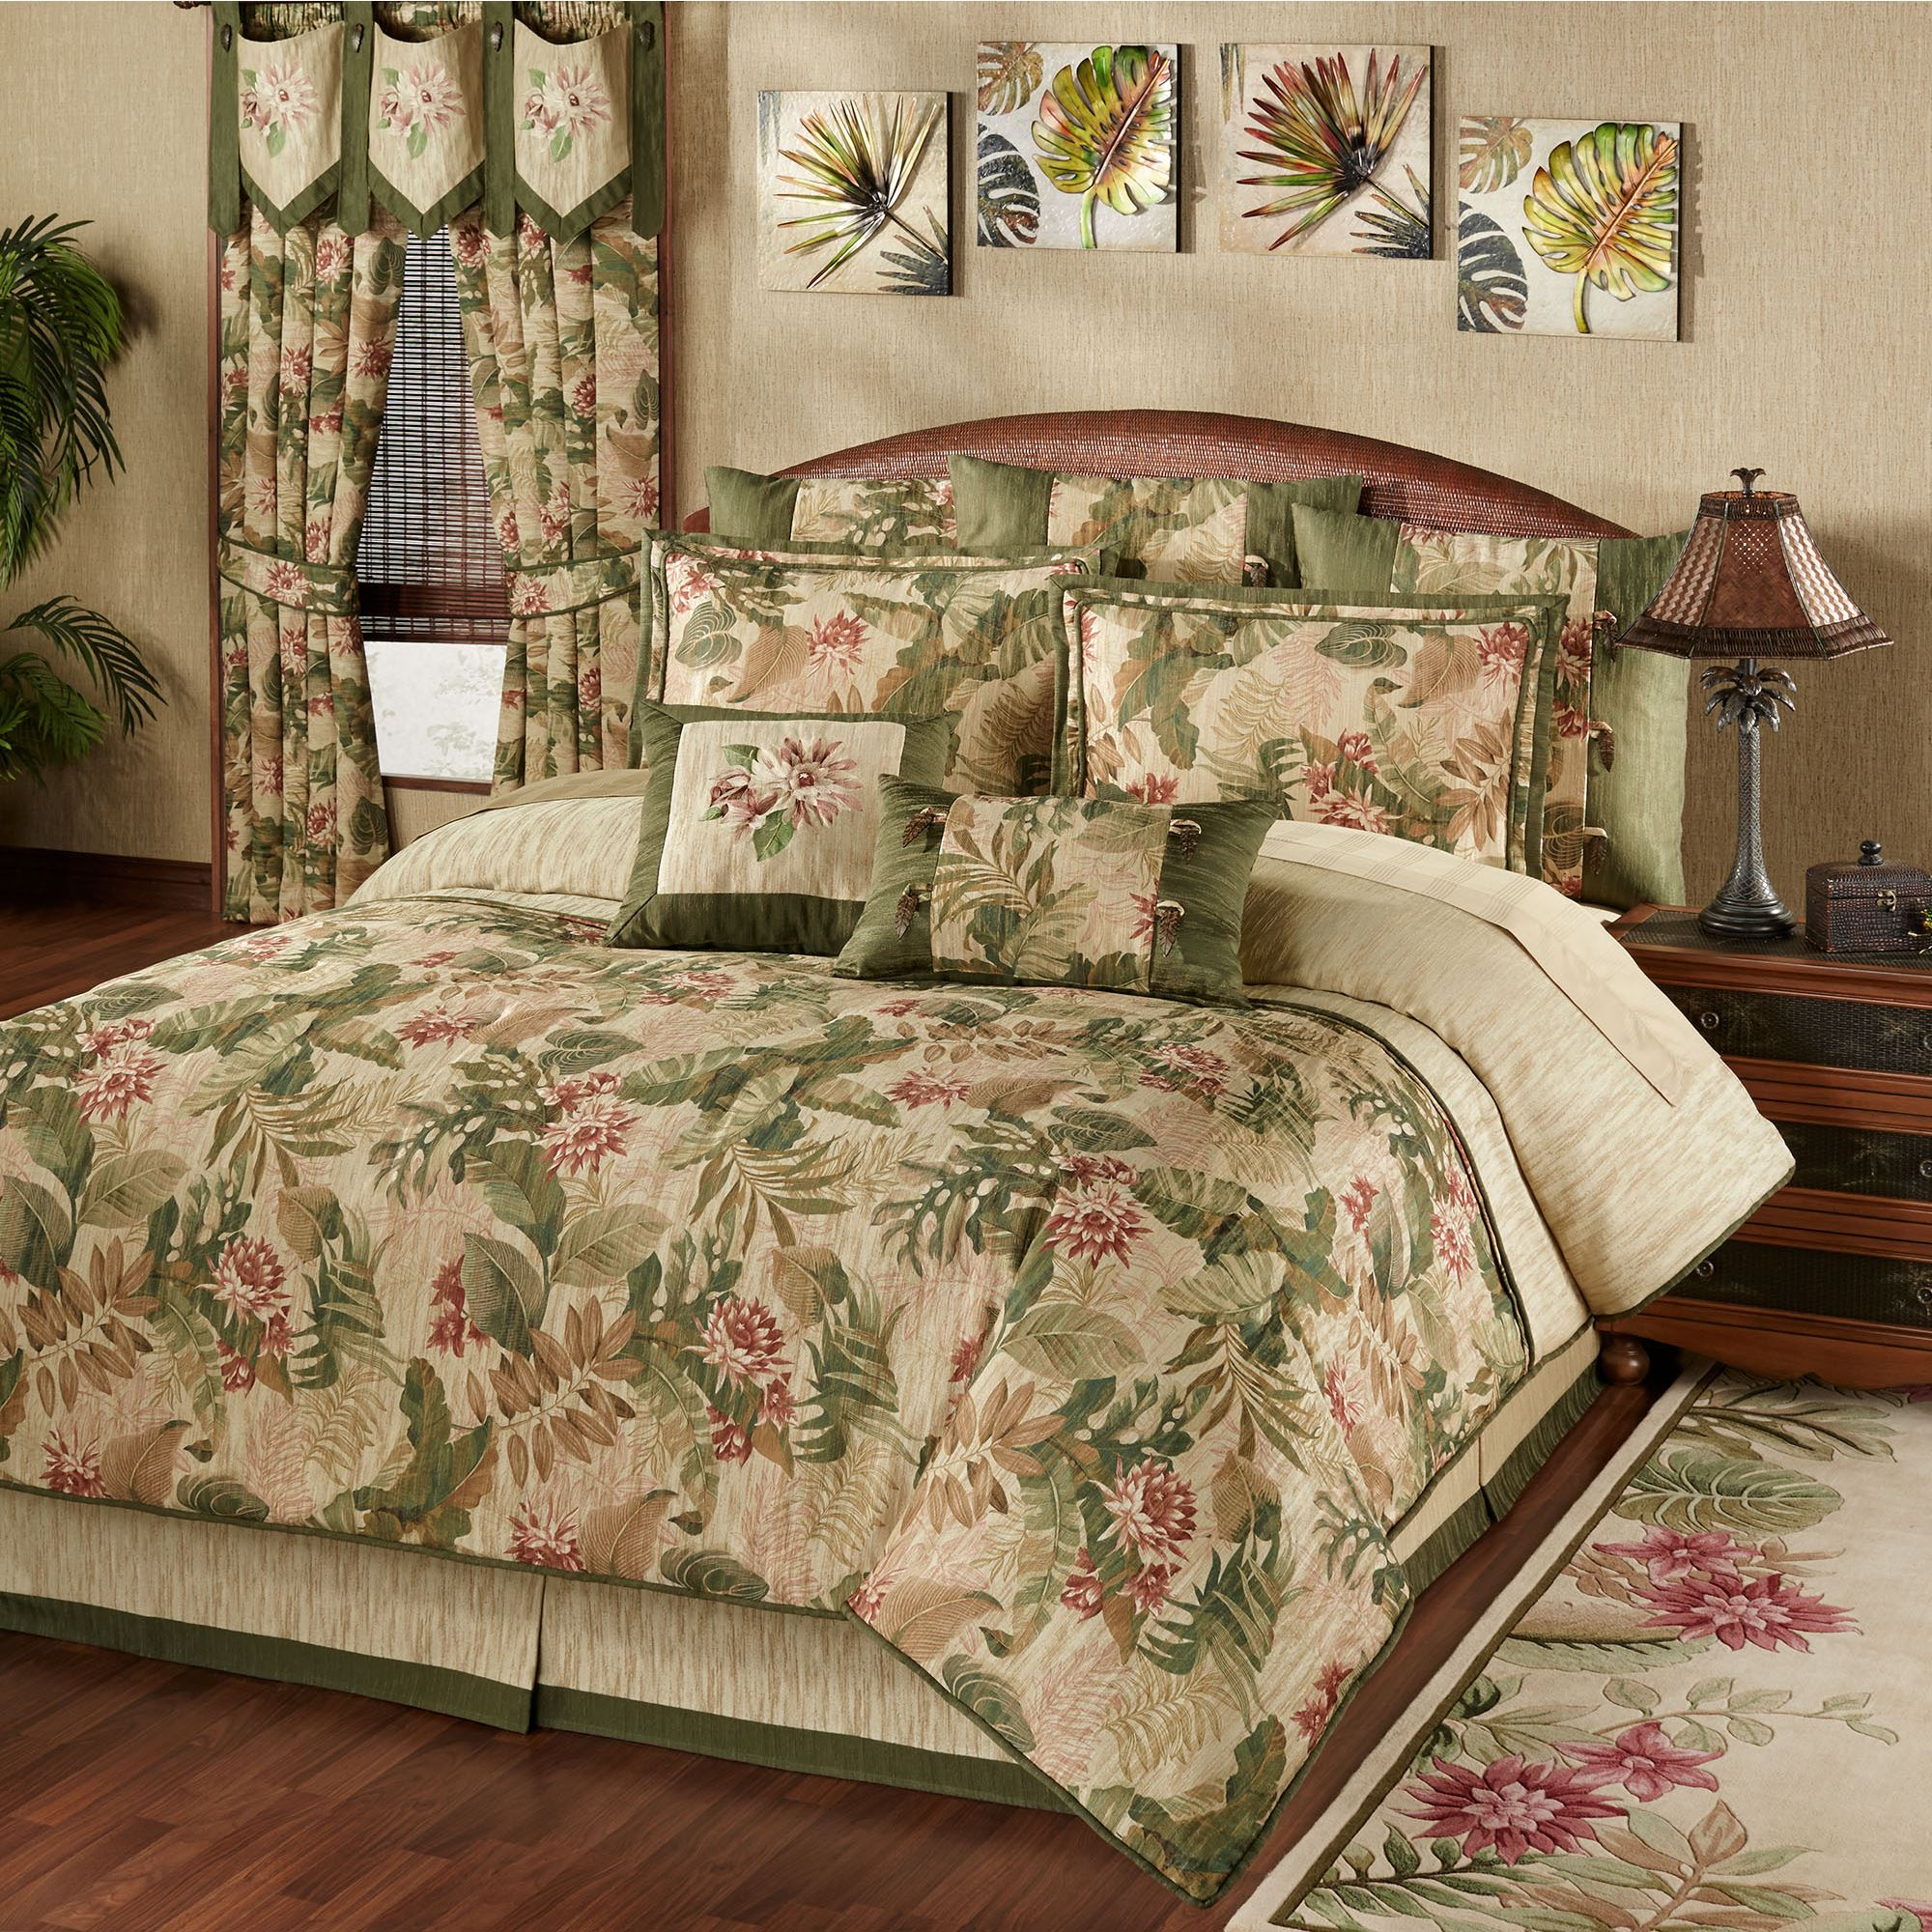 s collection quilts home bed fashions bedding brunswick tropical colbrunswickthom paul comforters